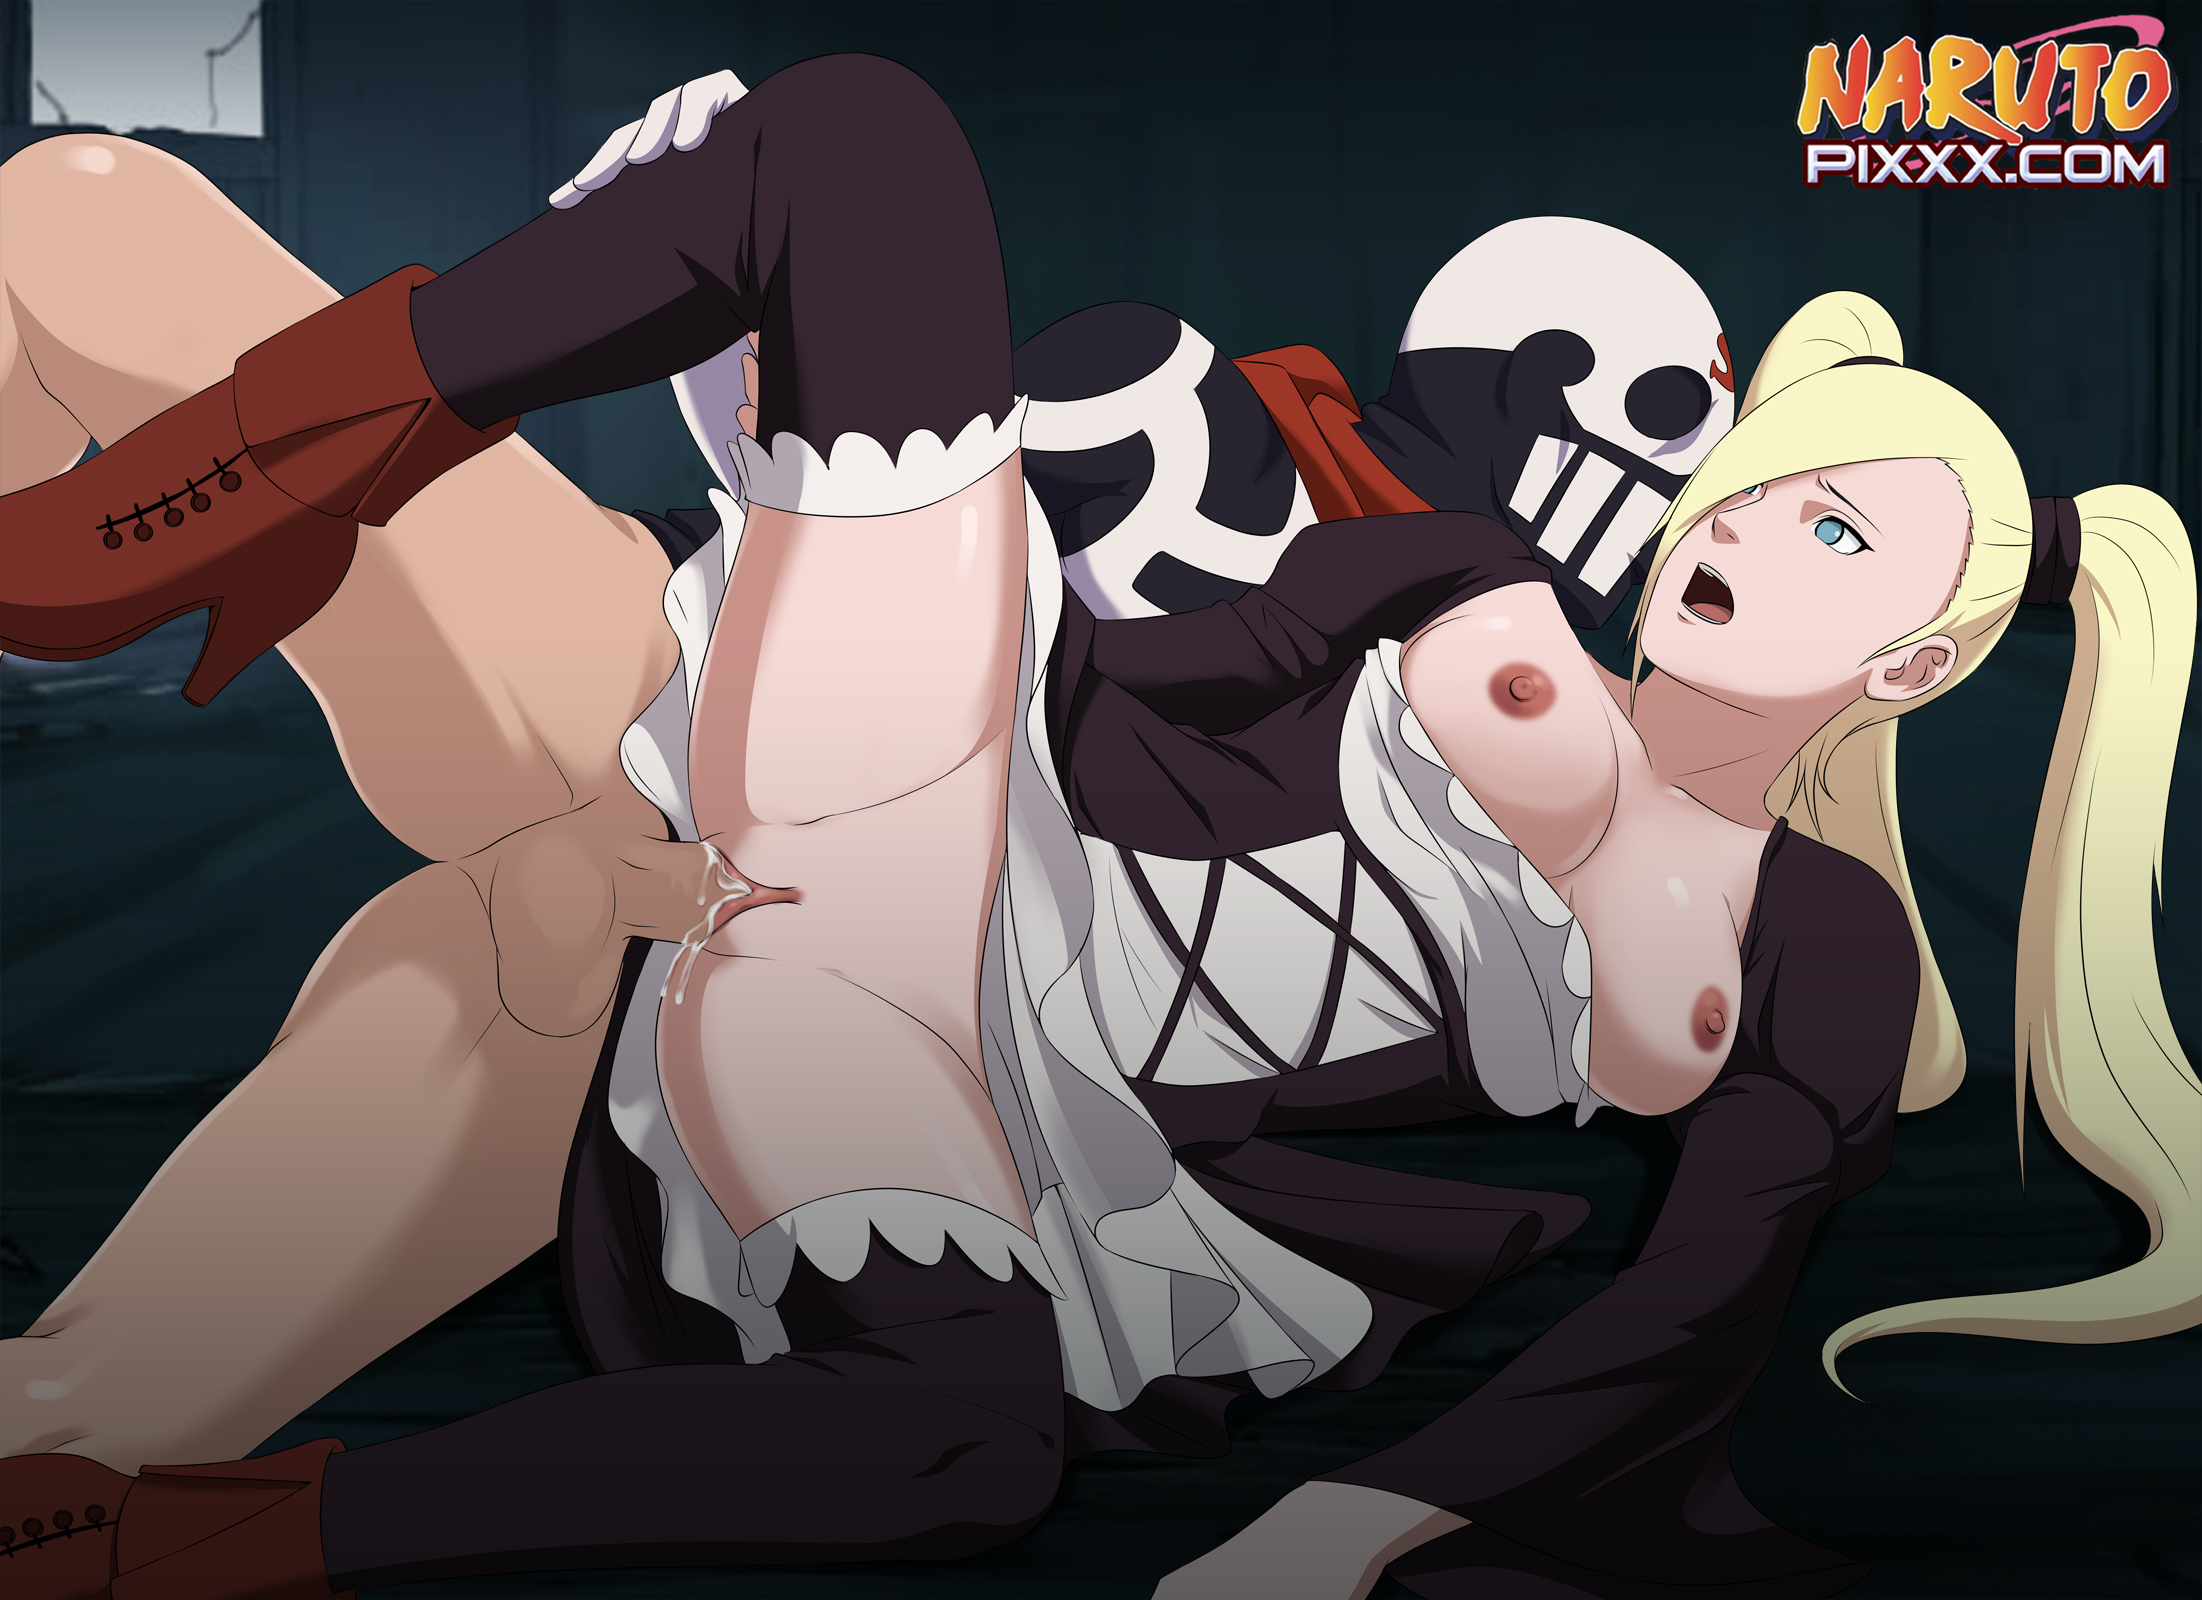 Anime dragon porm -z -ball -naruto movie nude tube